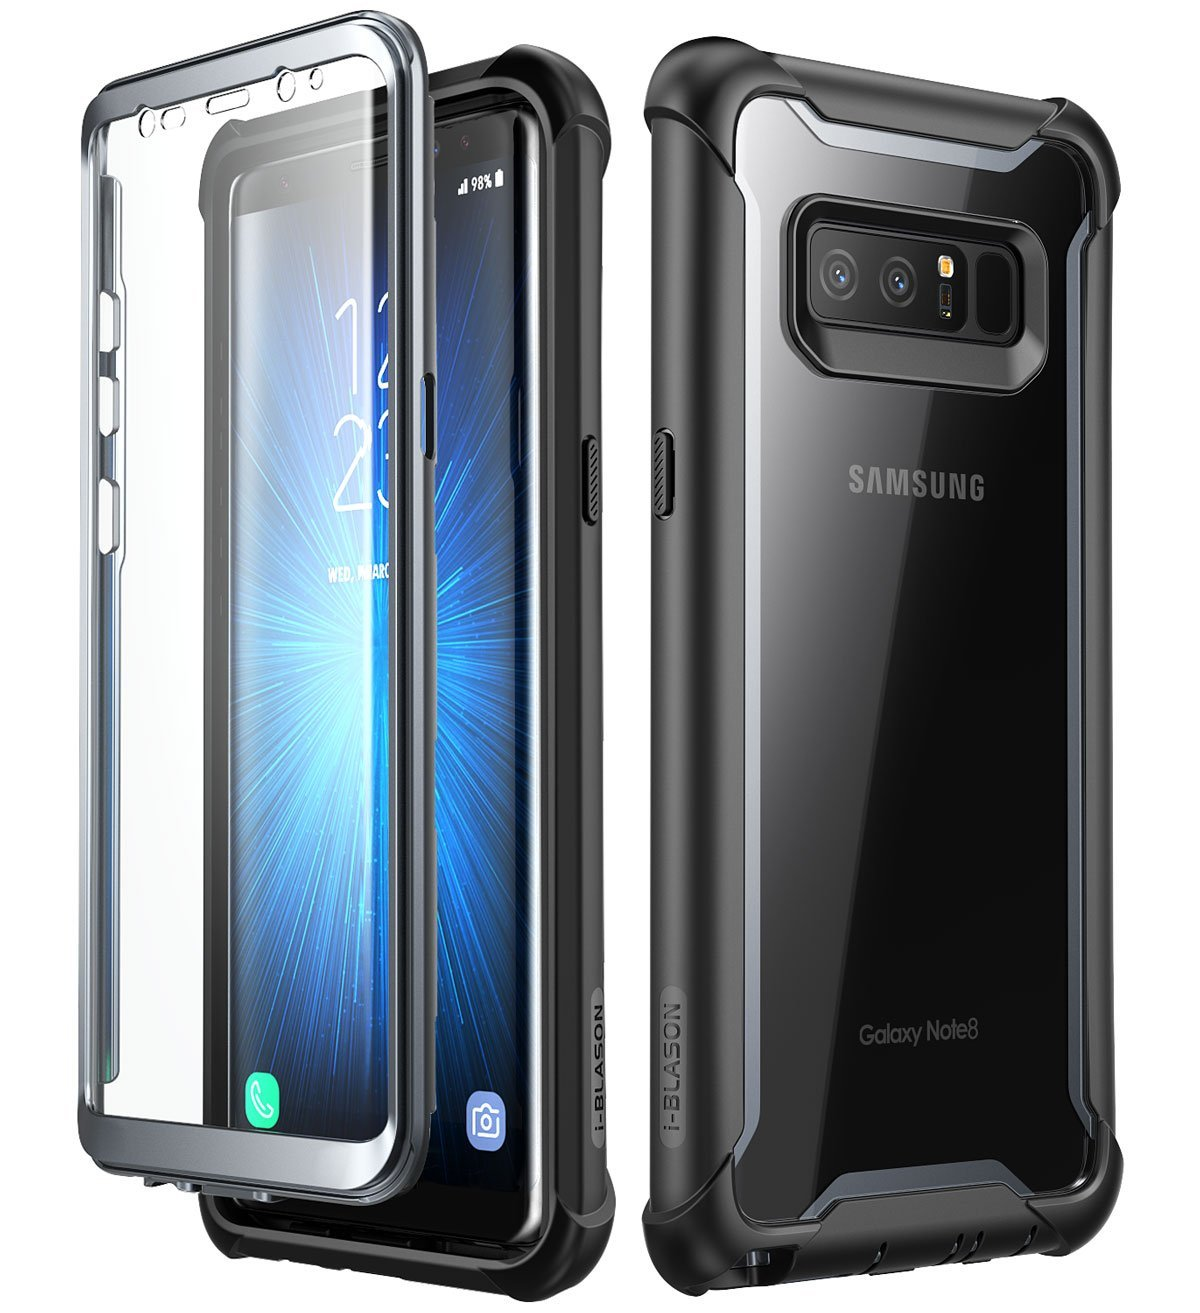 Samsung Galaxy Note 8 case,i-Blason [Ares Series] Full-body Rugged Clear Bumper Case with Built-in Screen Protector for Samsung Galaxy Note 8 2017 Release (Black)